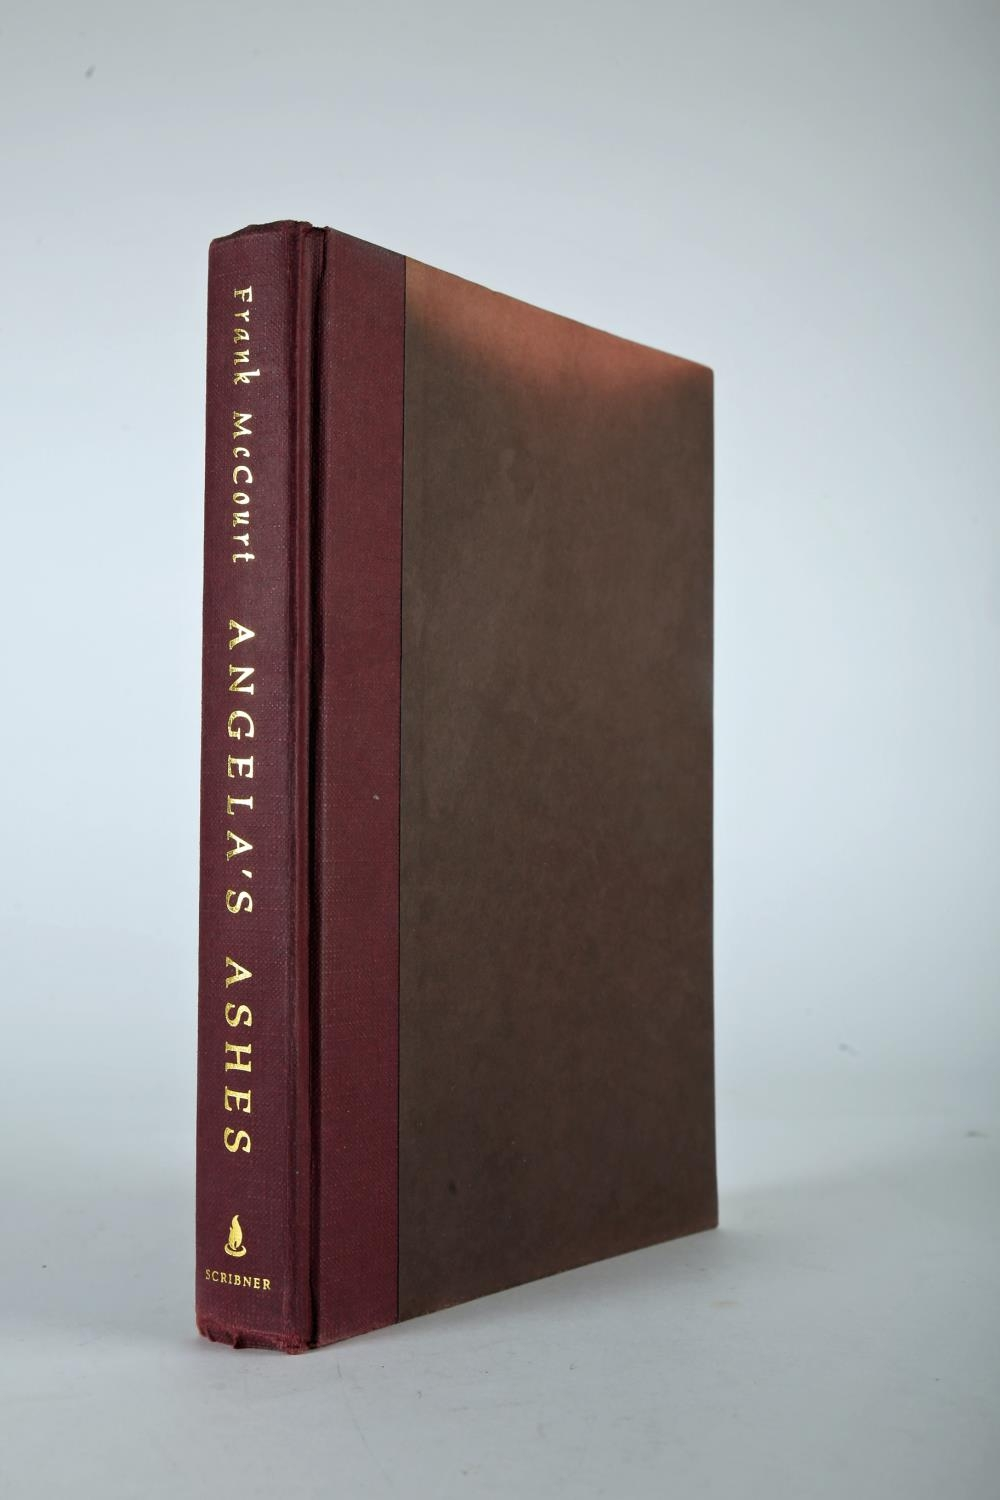 McCourt, Frank. Angela's Ashes. Scribner, New York. 1996, first edition, 8vo. red cloth gilt and - Image 3 of 4